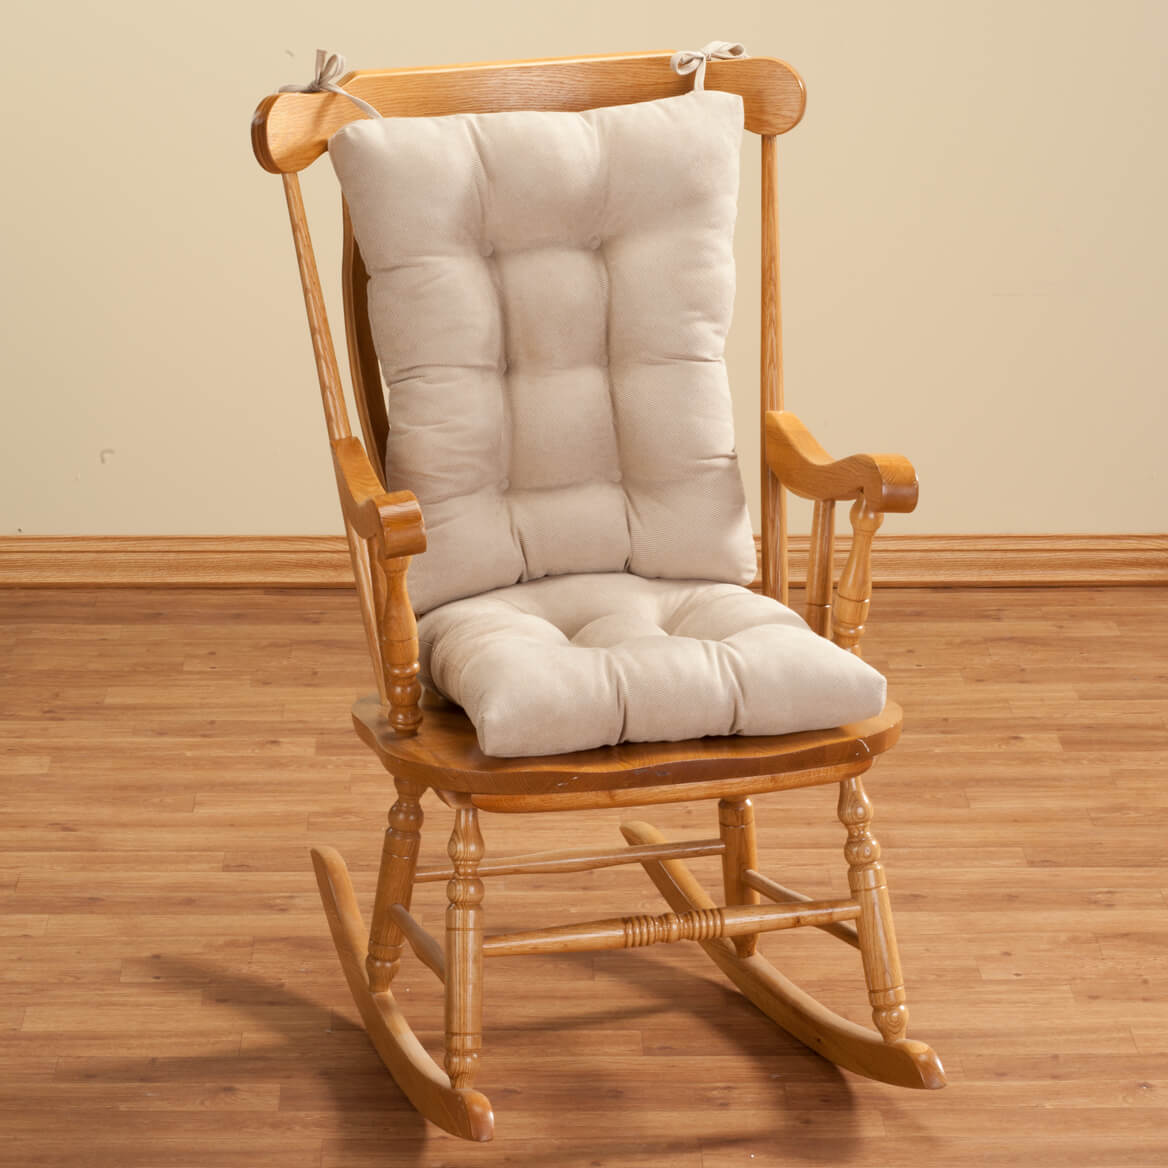 Enjoyable Twillo Rocking Chair Cushion Uwap Interior Chair Design Uwaporg